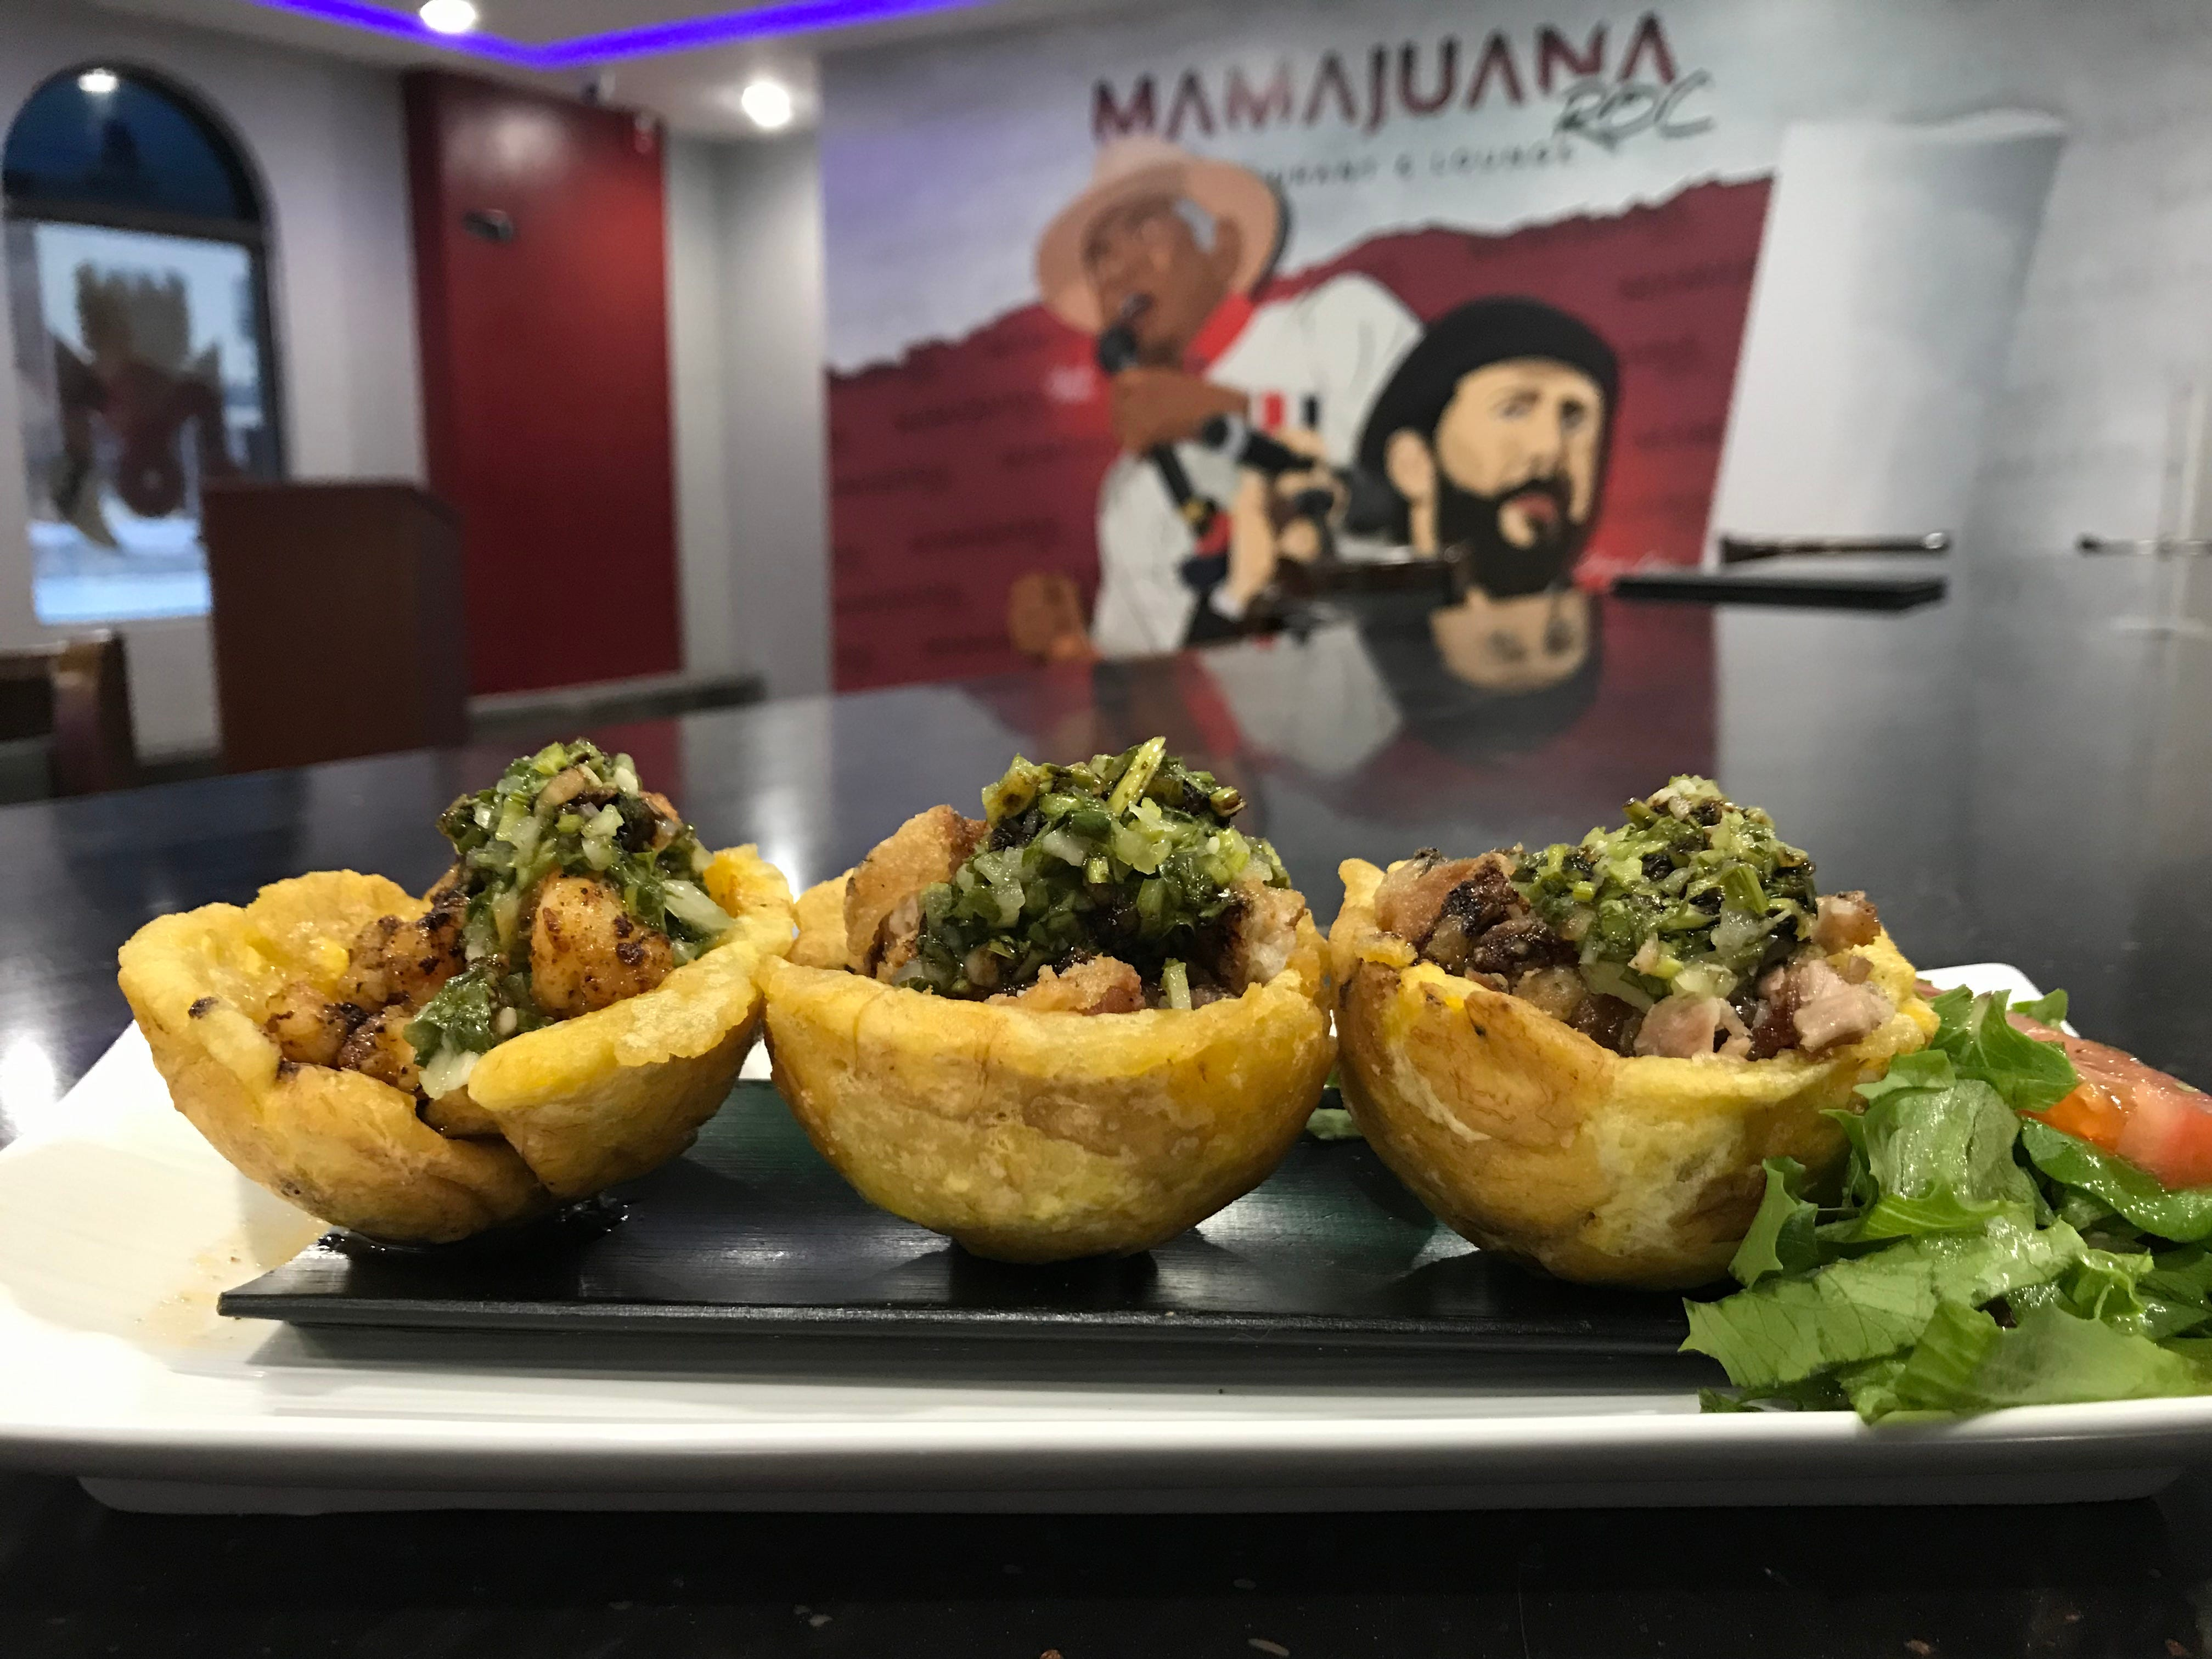 Plantains are formed into cups for the canasta de platano appetizer at MamaJuana Restaurant and Lounge in Rochester.